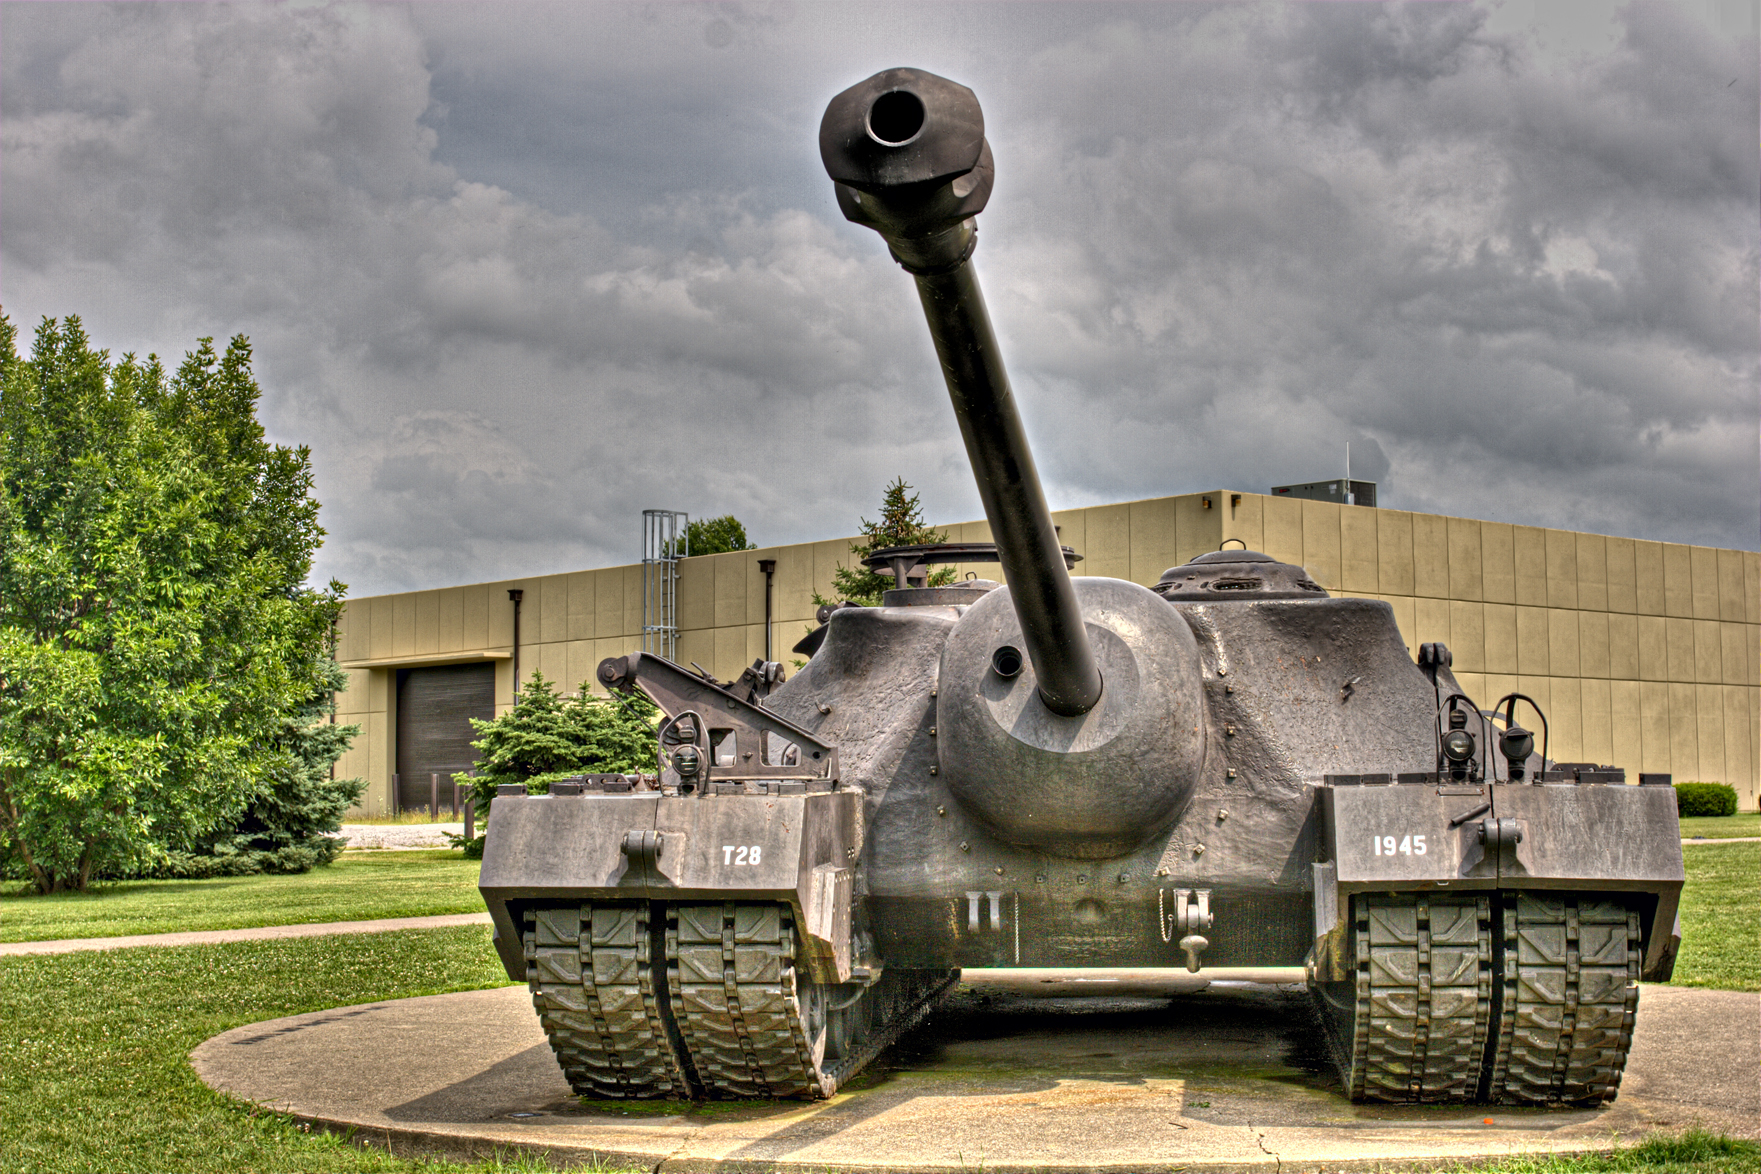 http://upload.wikimedia.org/wikipedia/commons/a/af/T28_Super_Heavy_Tank.jpg